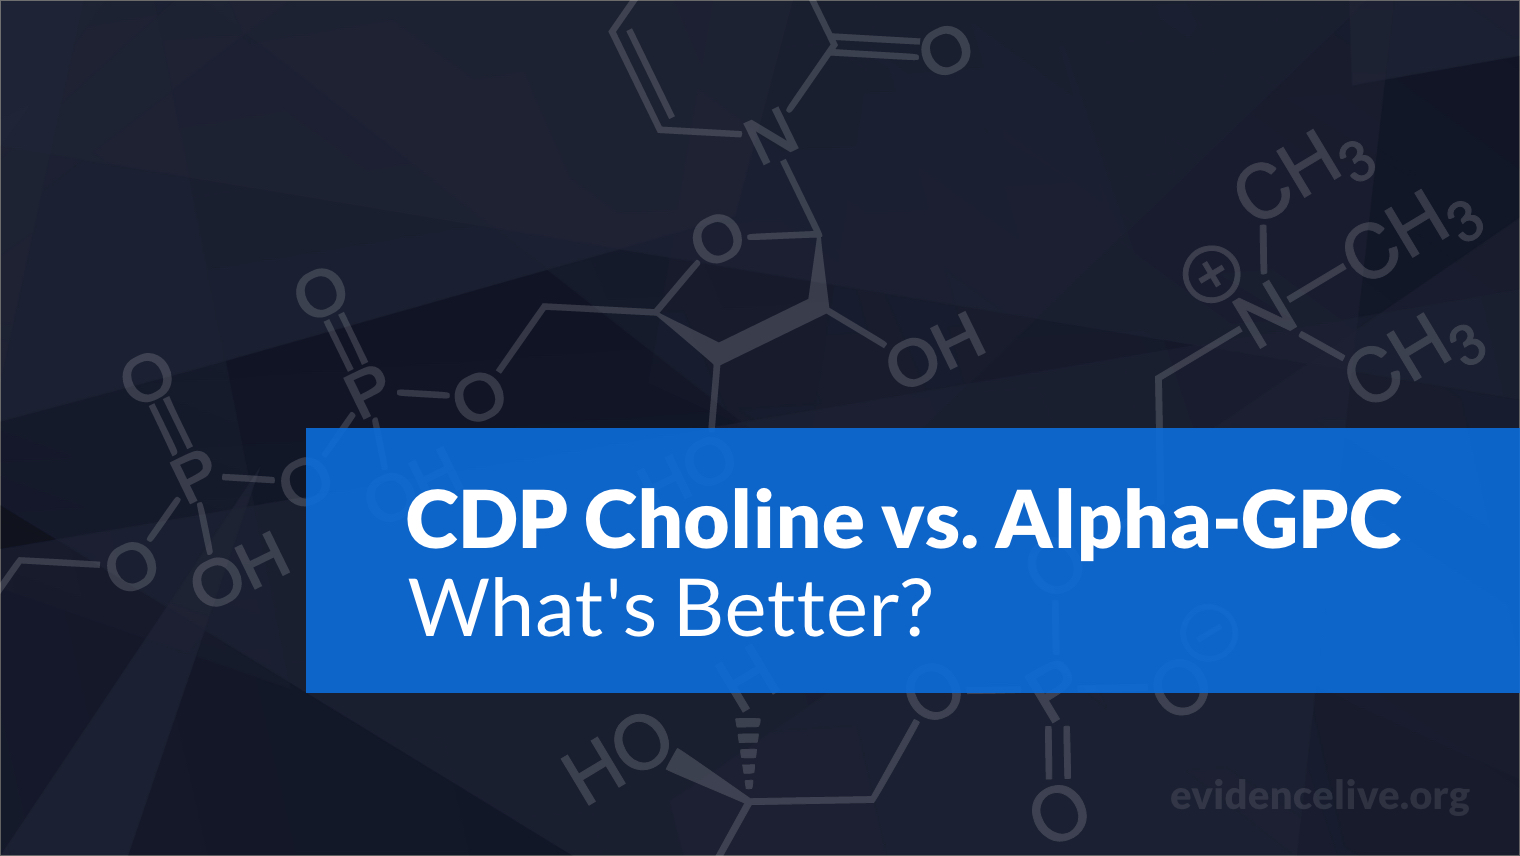 CDP Choline vs. Alpha-GPC: Differences and What's Better